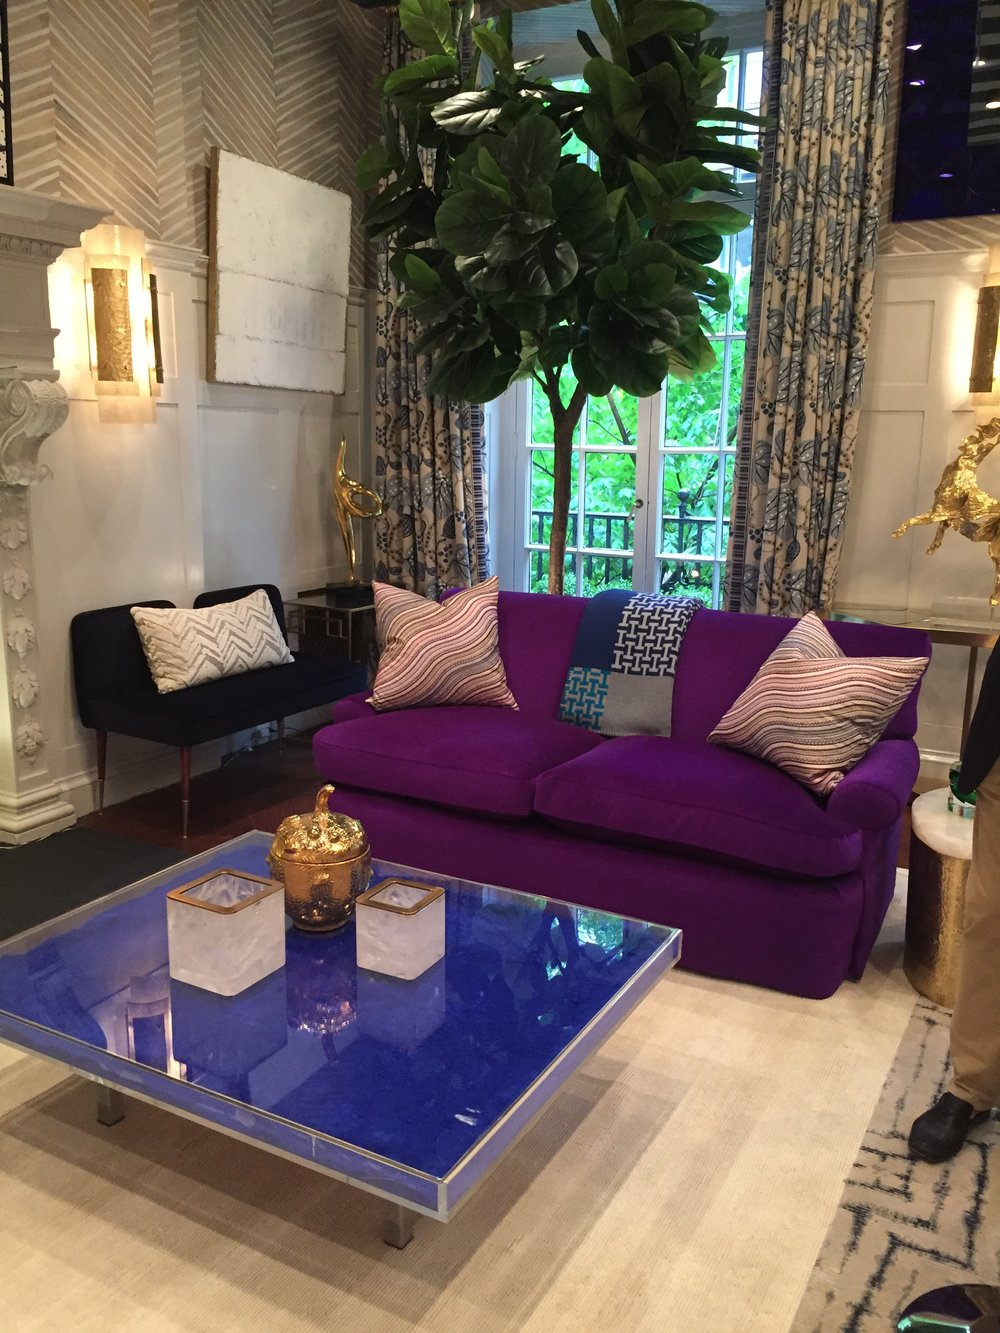 I neglected to snap a pic of the artwork in this room by  Kirsten Kelli  (which had a lot of cool pop art) because I was mesmerized by this purple, velvet sofa.  Such a great color! This was probably my second favorite room behind Robert Stilin's.  Super bold and interesting.